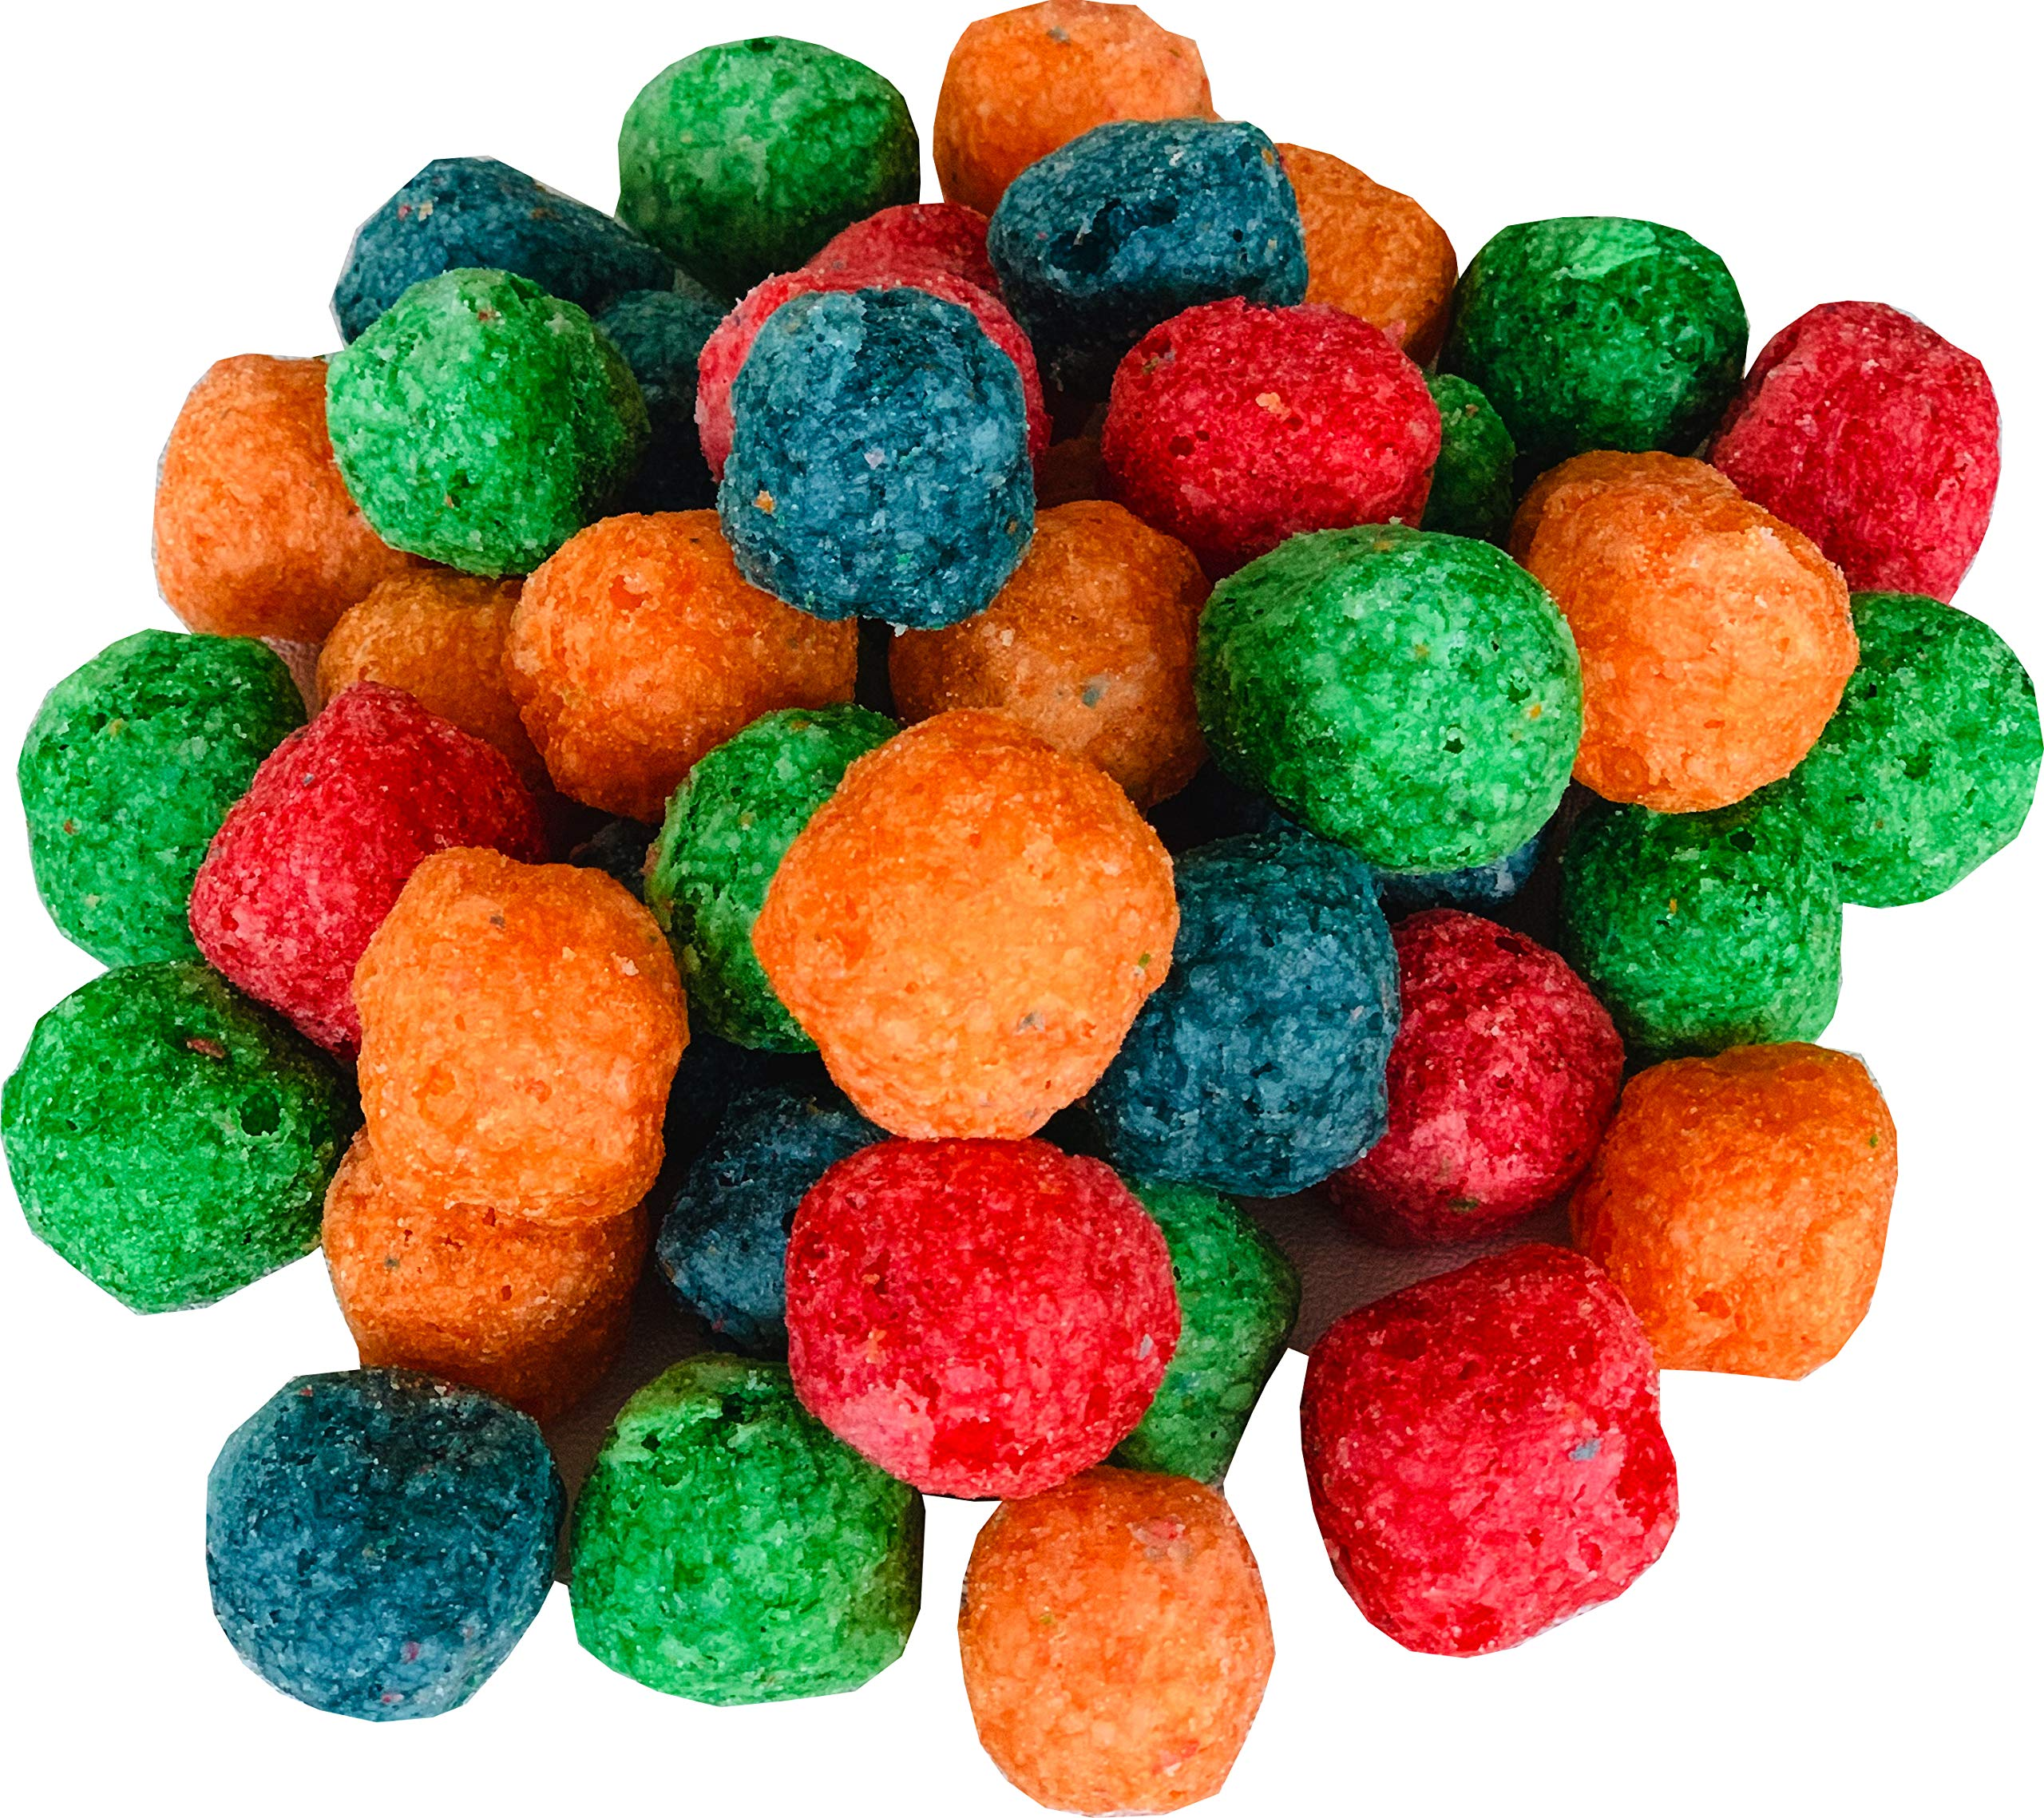 Awsum Snacks Dragons Breath Nitrogen Fruity Sweet Puff Cereal Snack Puffs Balls Gluten Free Four Colors Four Natural Flavors, Always Fresh 10 bags (1 bag -300 grams, 10.58 oz)